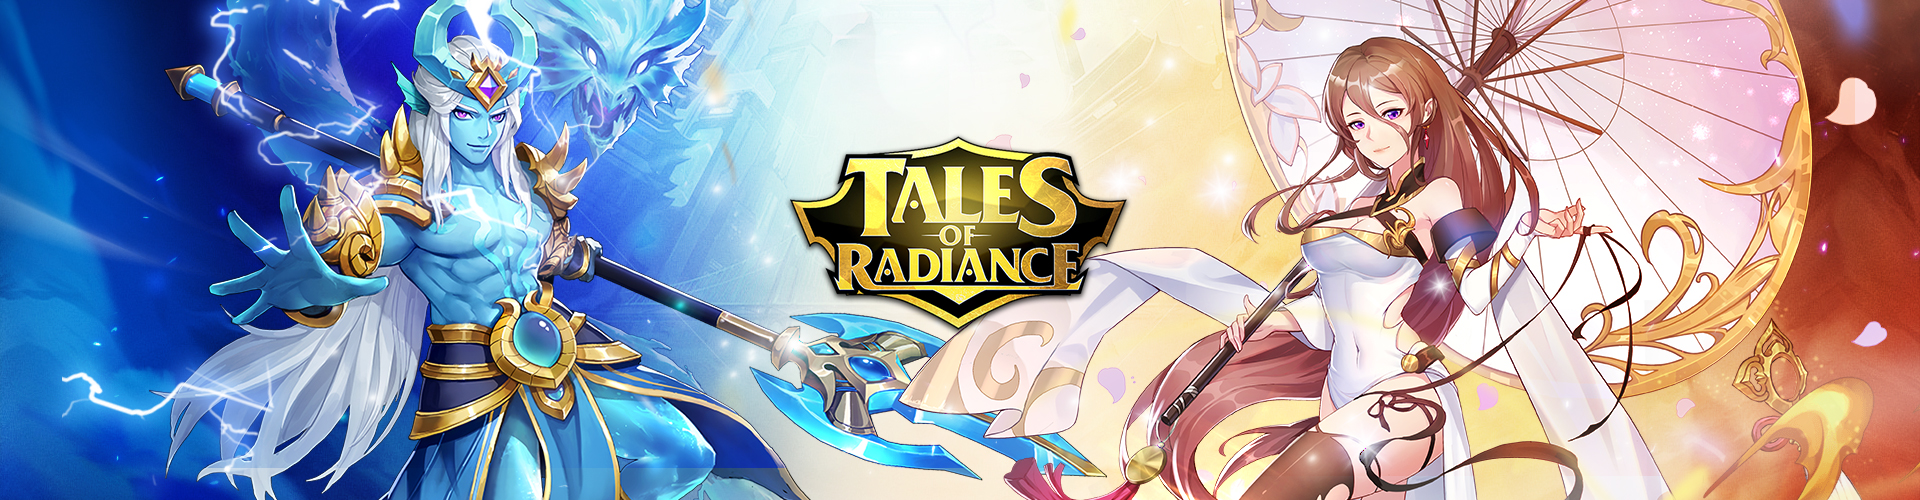 Tales of Radiance